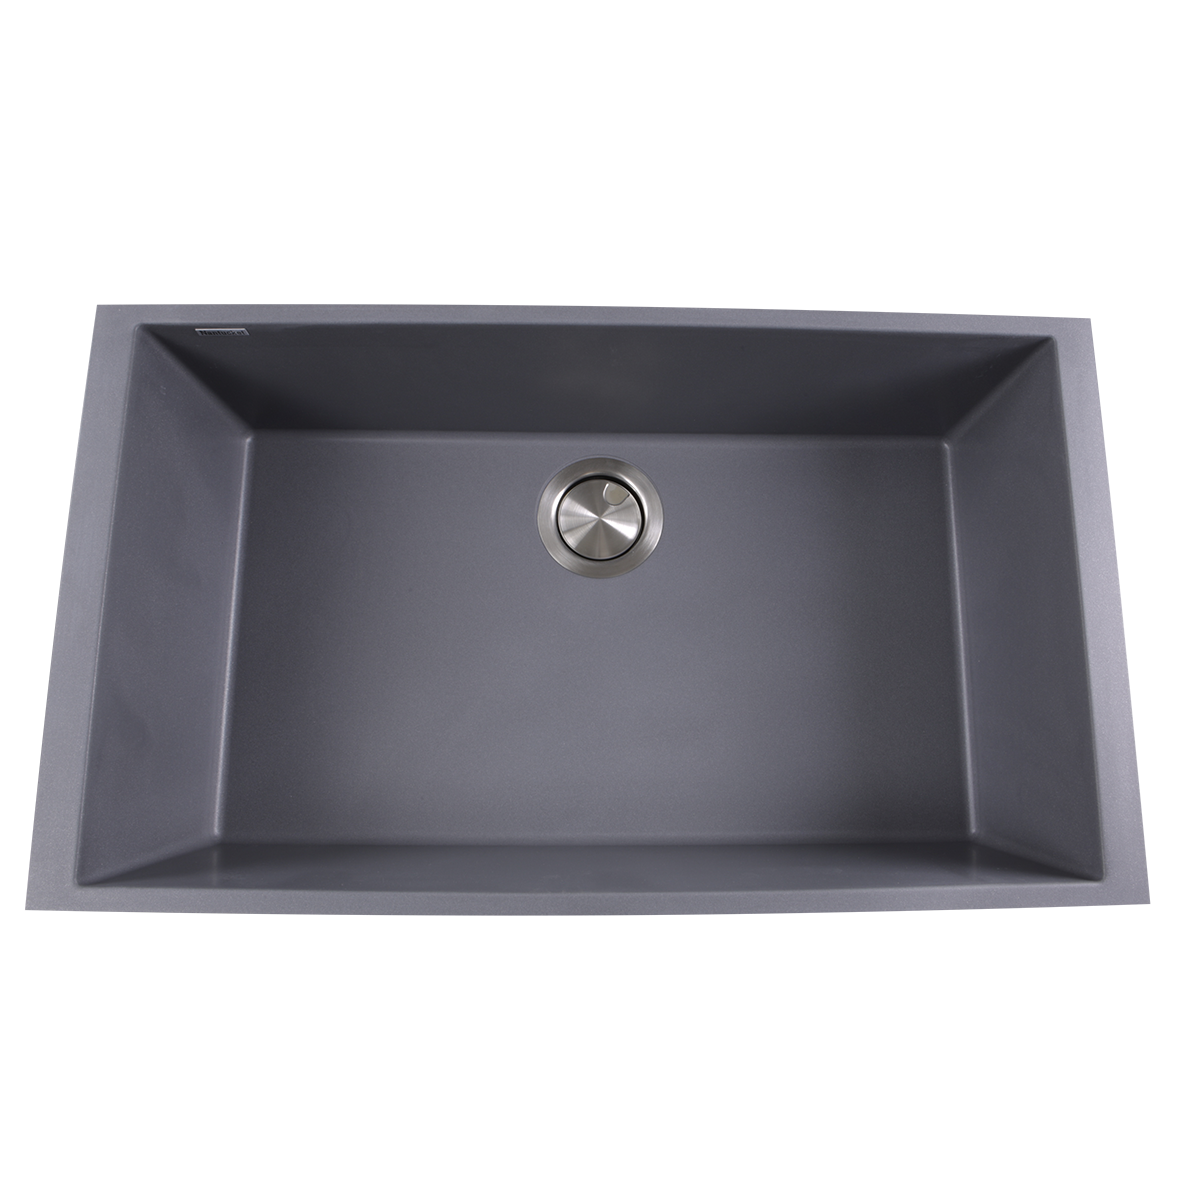 Nantucket Sinks PR3018-S Large Single Bowl Undermount Granite Composite in Sand